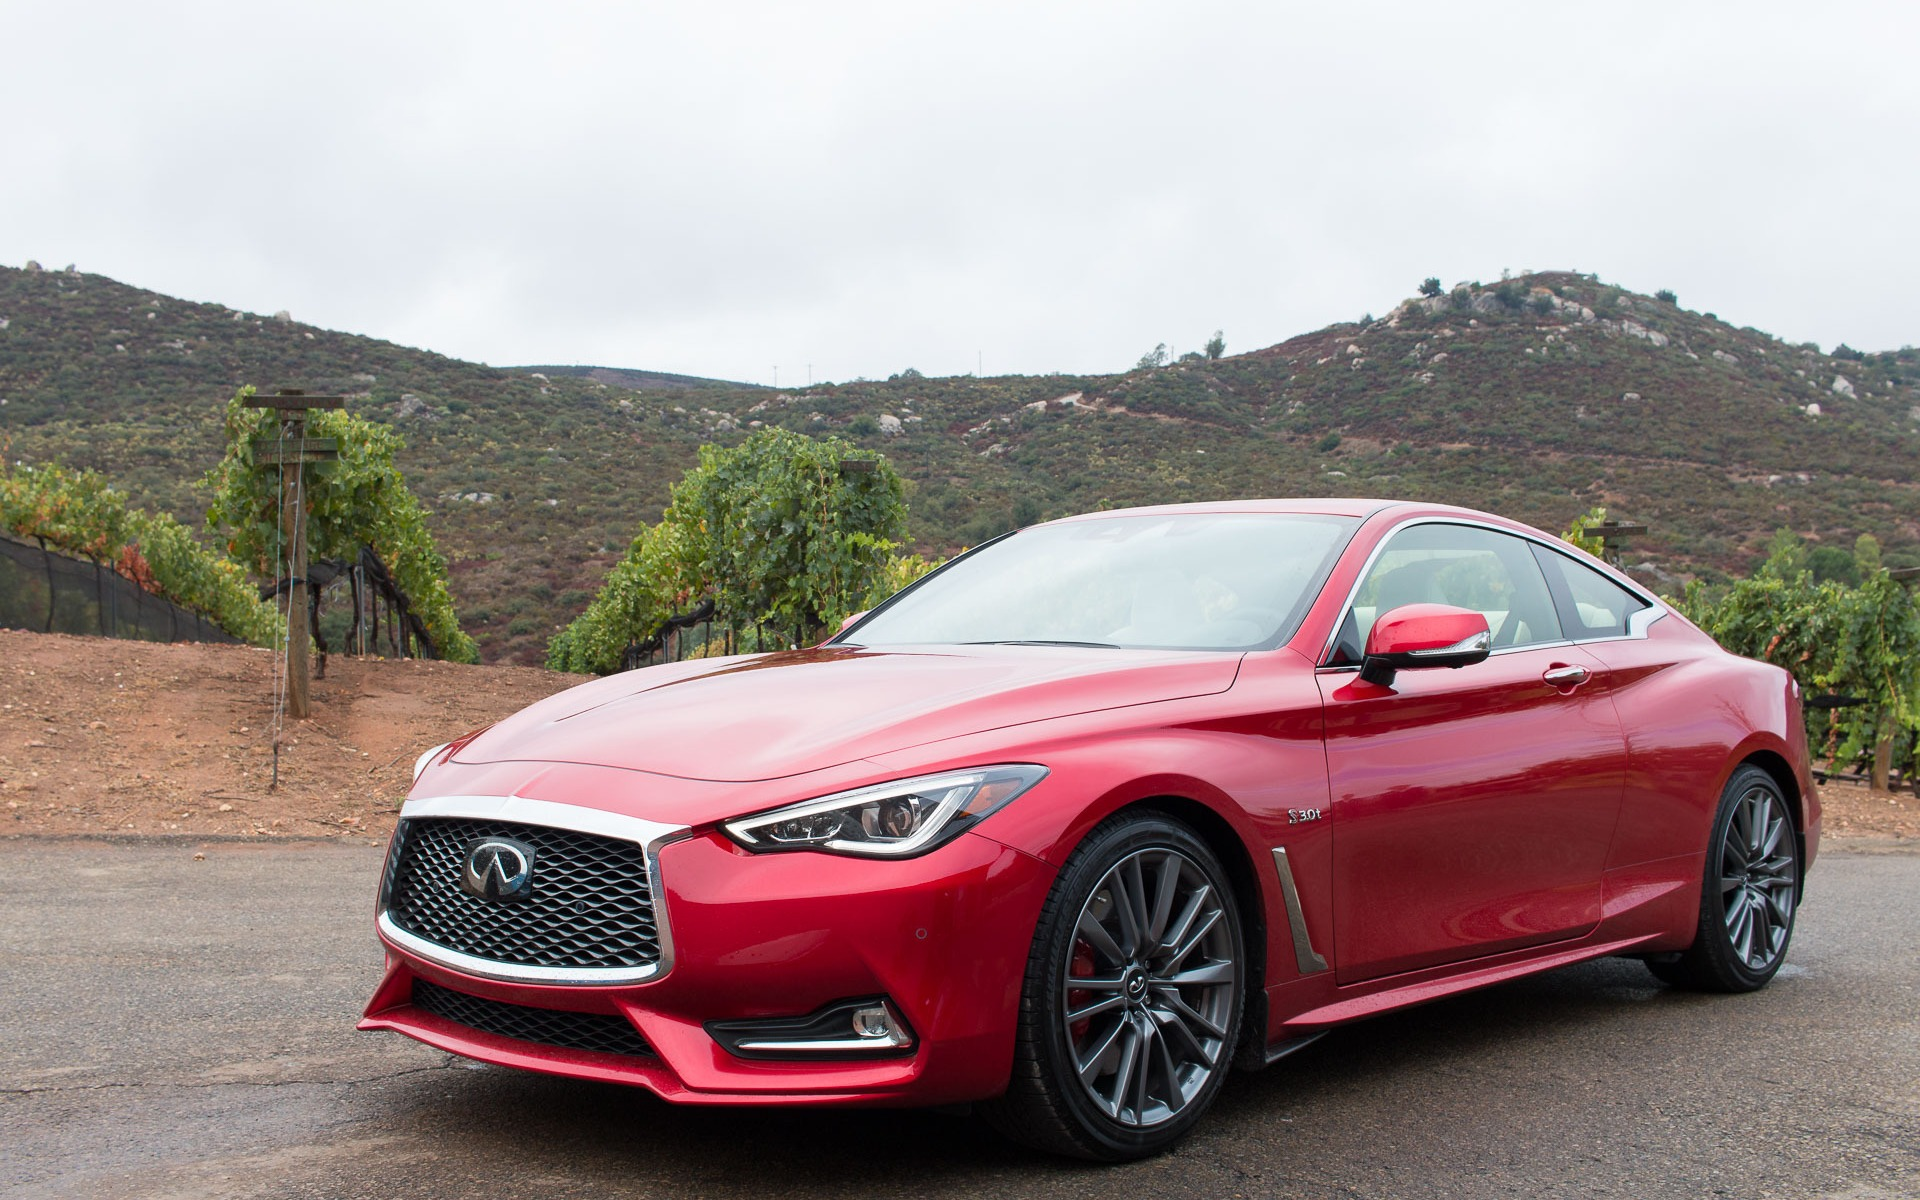 2017 Infiniti Q60 Red Sport: A Sport Coupe Made For Real People